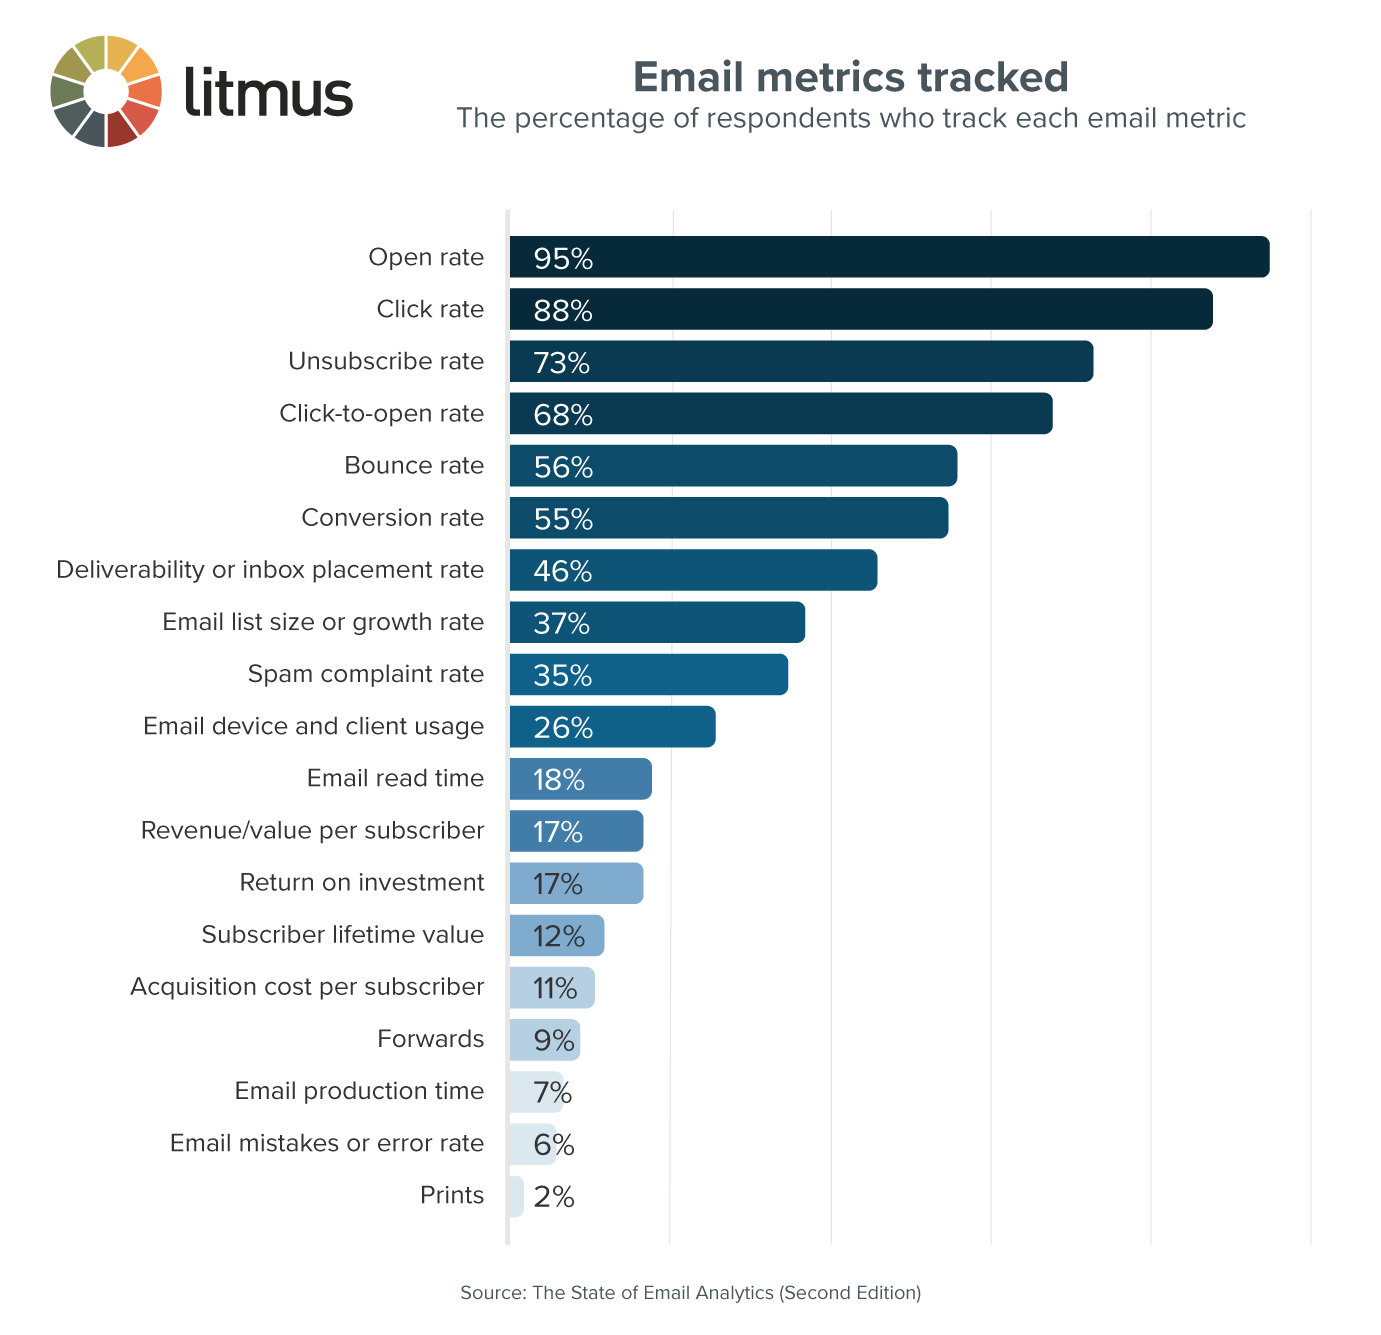 Email metrics tracked chart